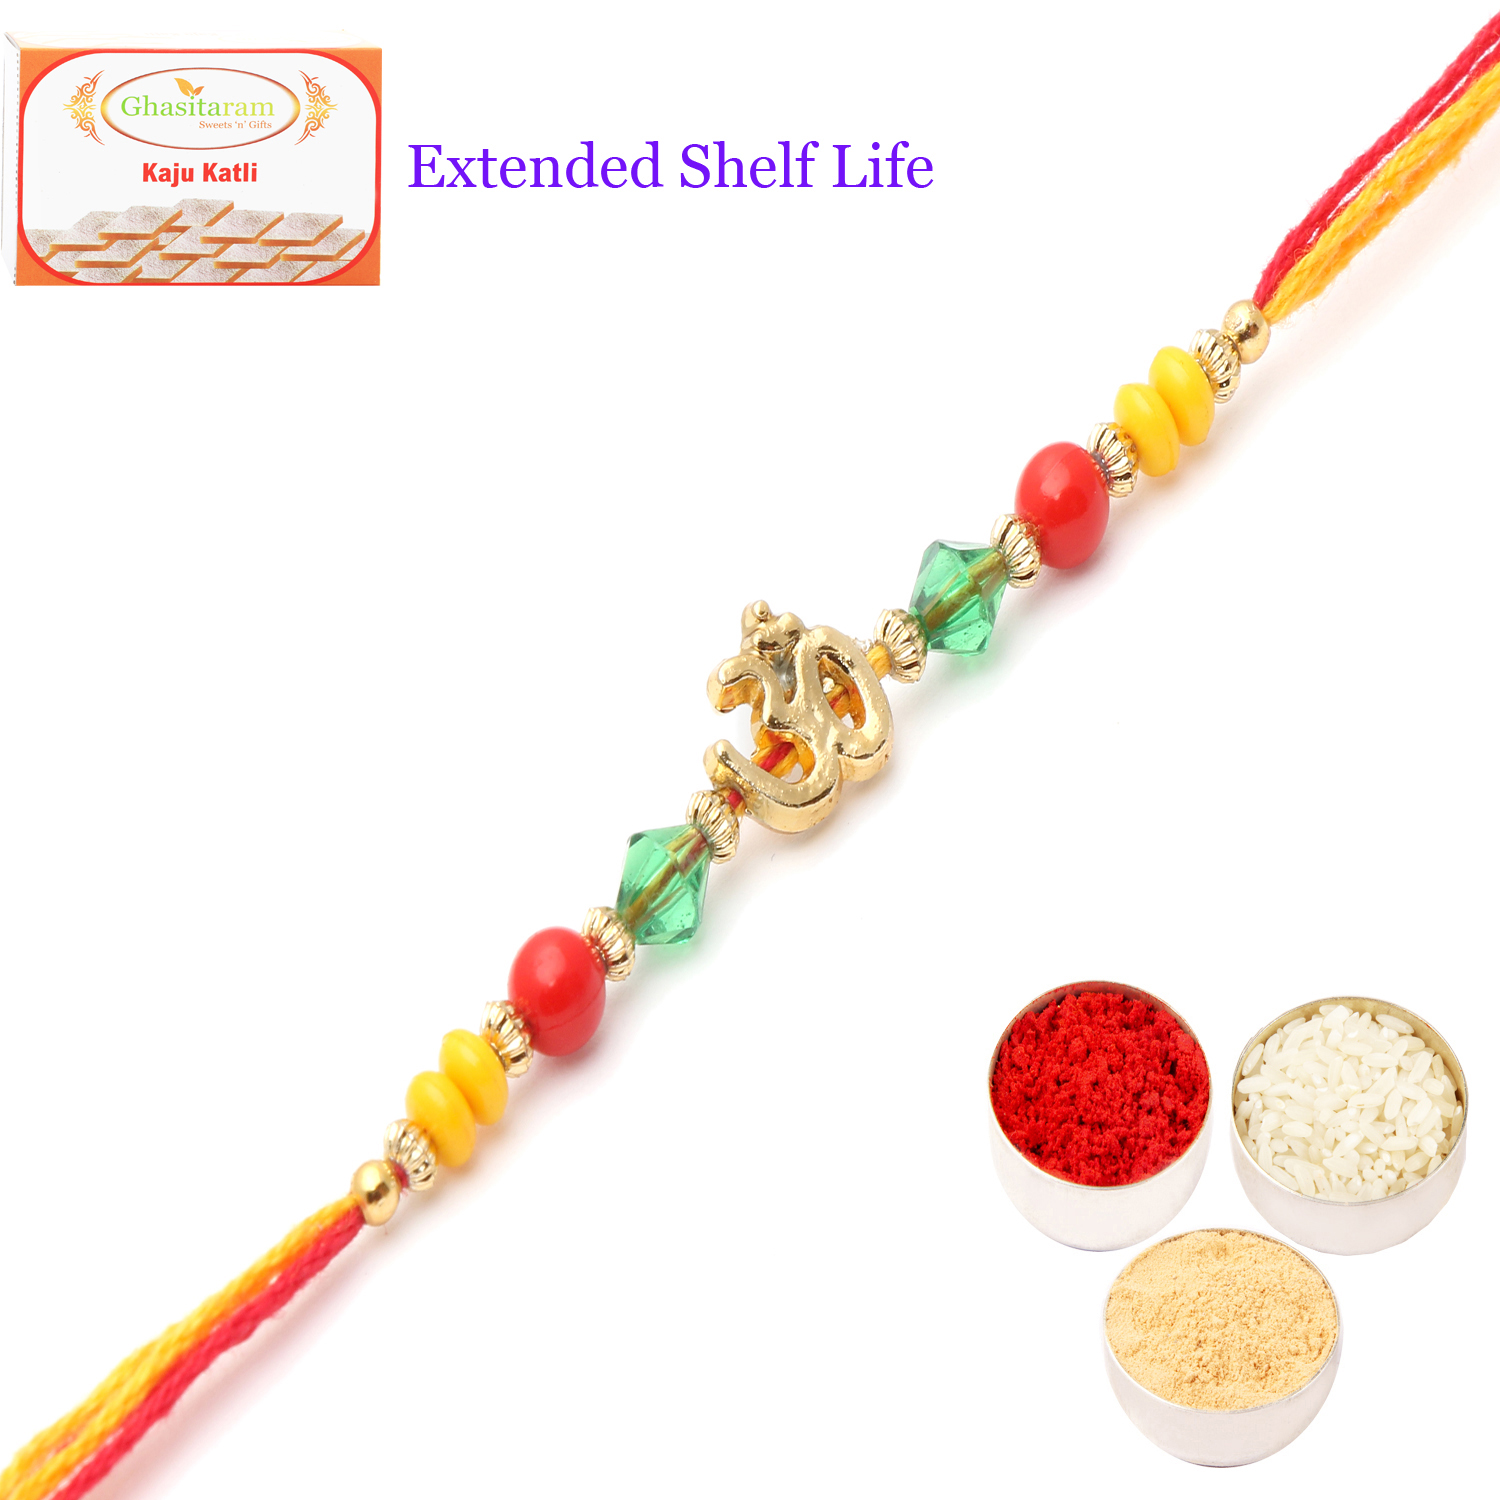 6013 Rakhi Thread with 400Gm Kaju Katli